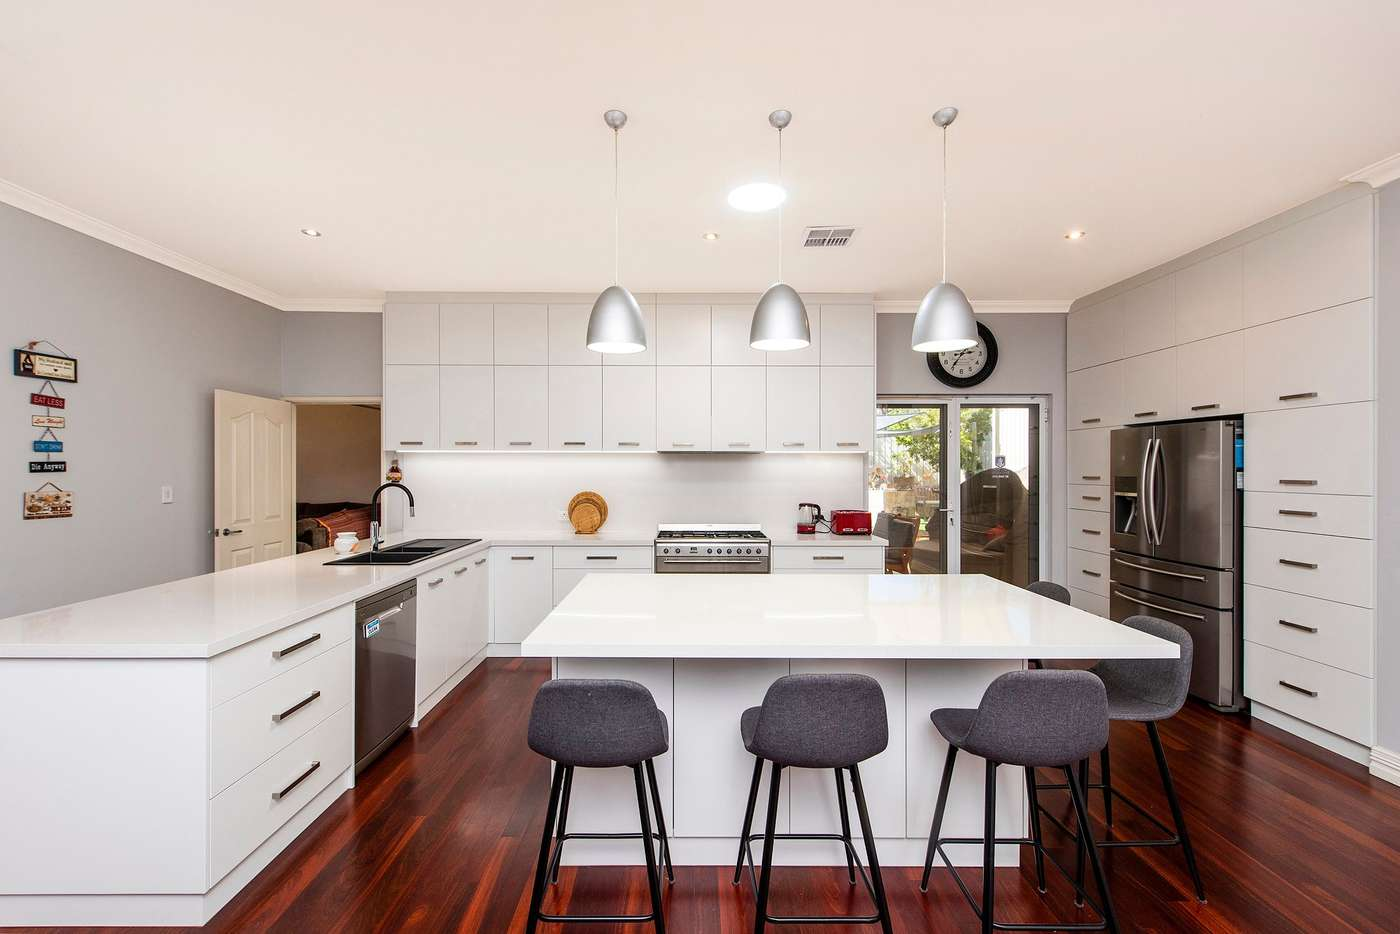 Main view of Homely house listing, 1 Upton Court, Baldivis WA 6171